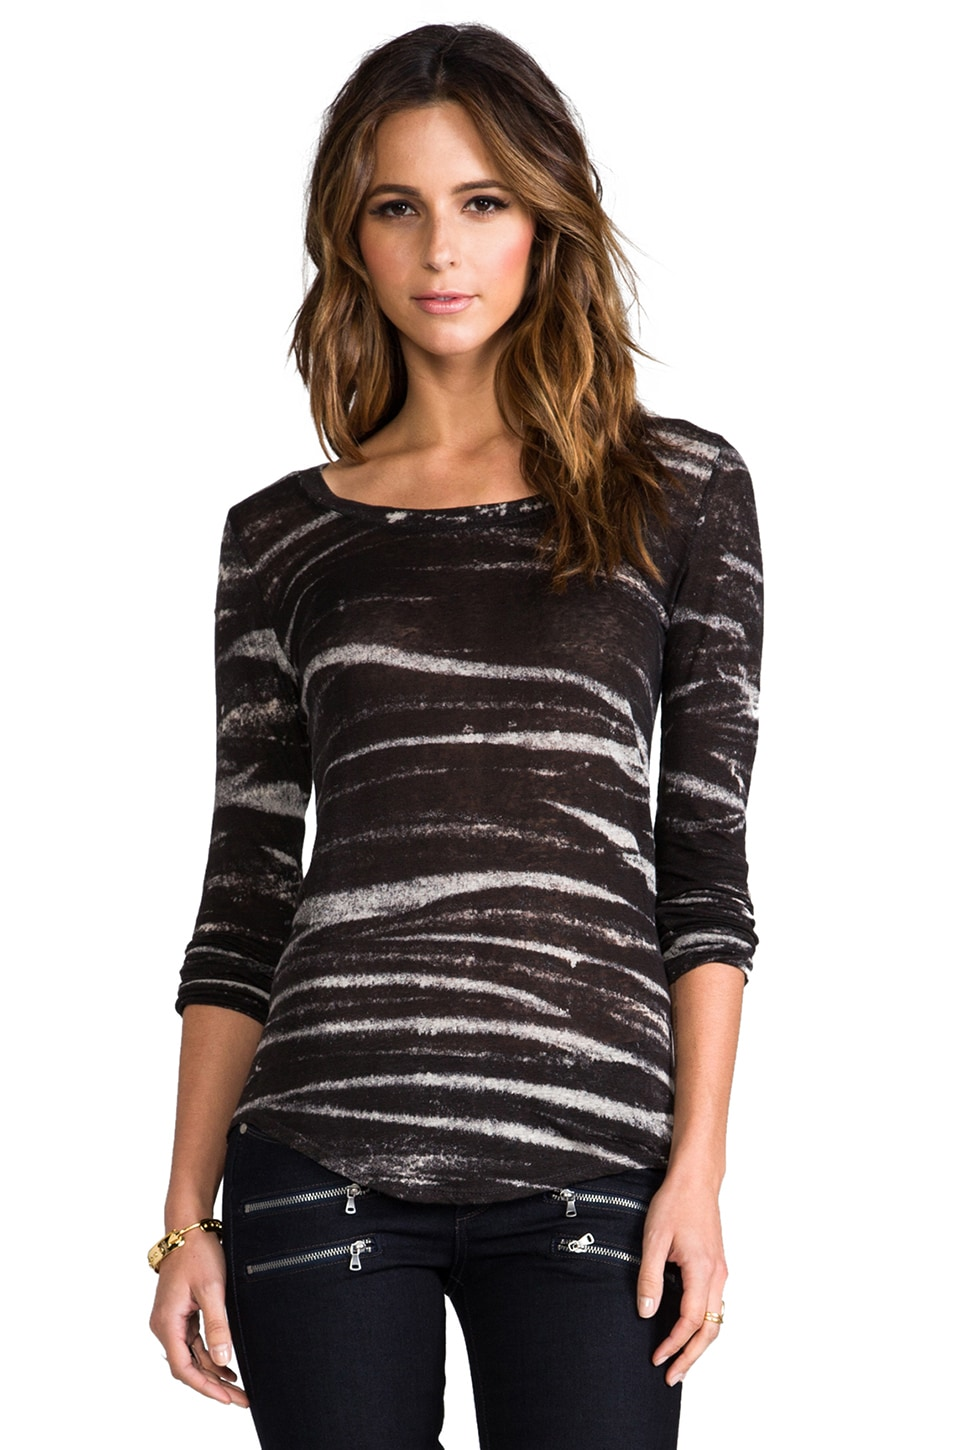 Whetherly Rosewood Long Sleeve Tee in Black